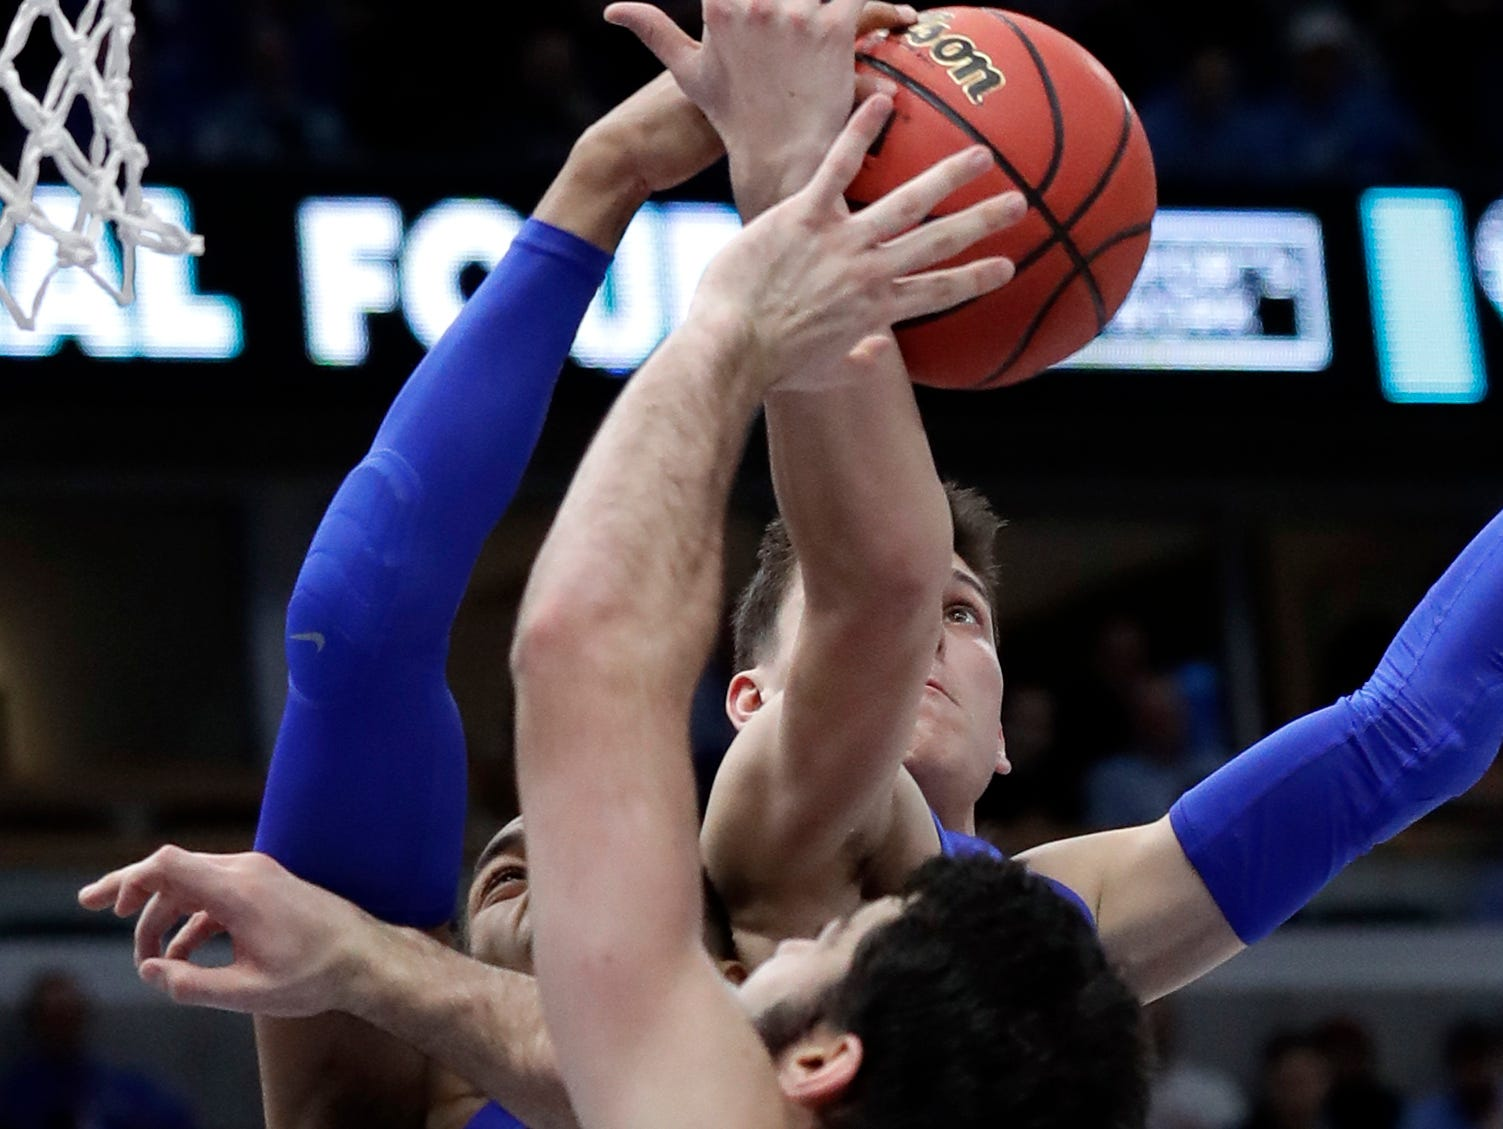 Kentucky's Tyler Herro, top, vies for a rebound against forward PJ Washington Jr., left, and North Carolina forward Luke Maye during the second half of an NCAA college basketball game Saturday, Dec. 22, 2018, in Chicago. Kentucky won 80-72.